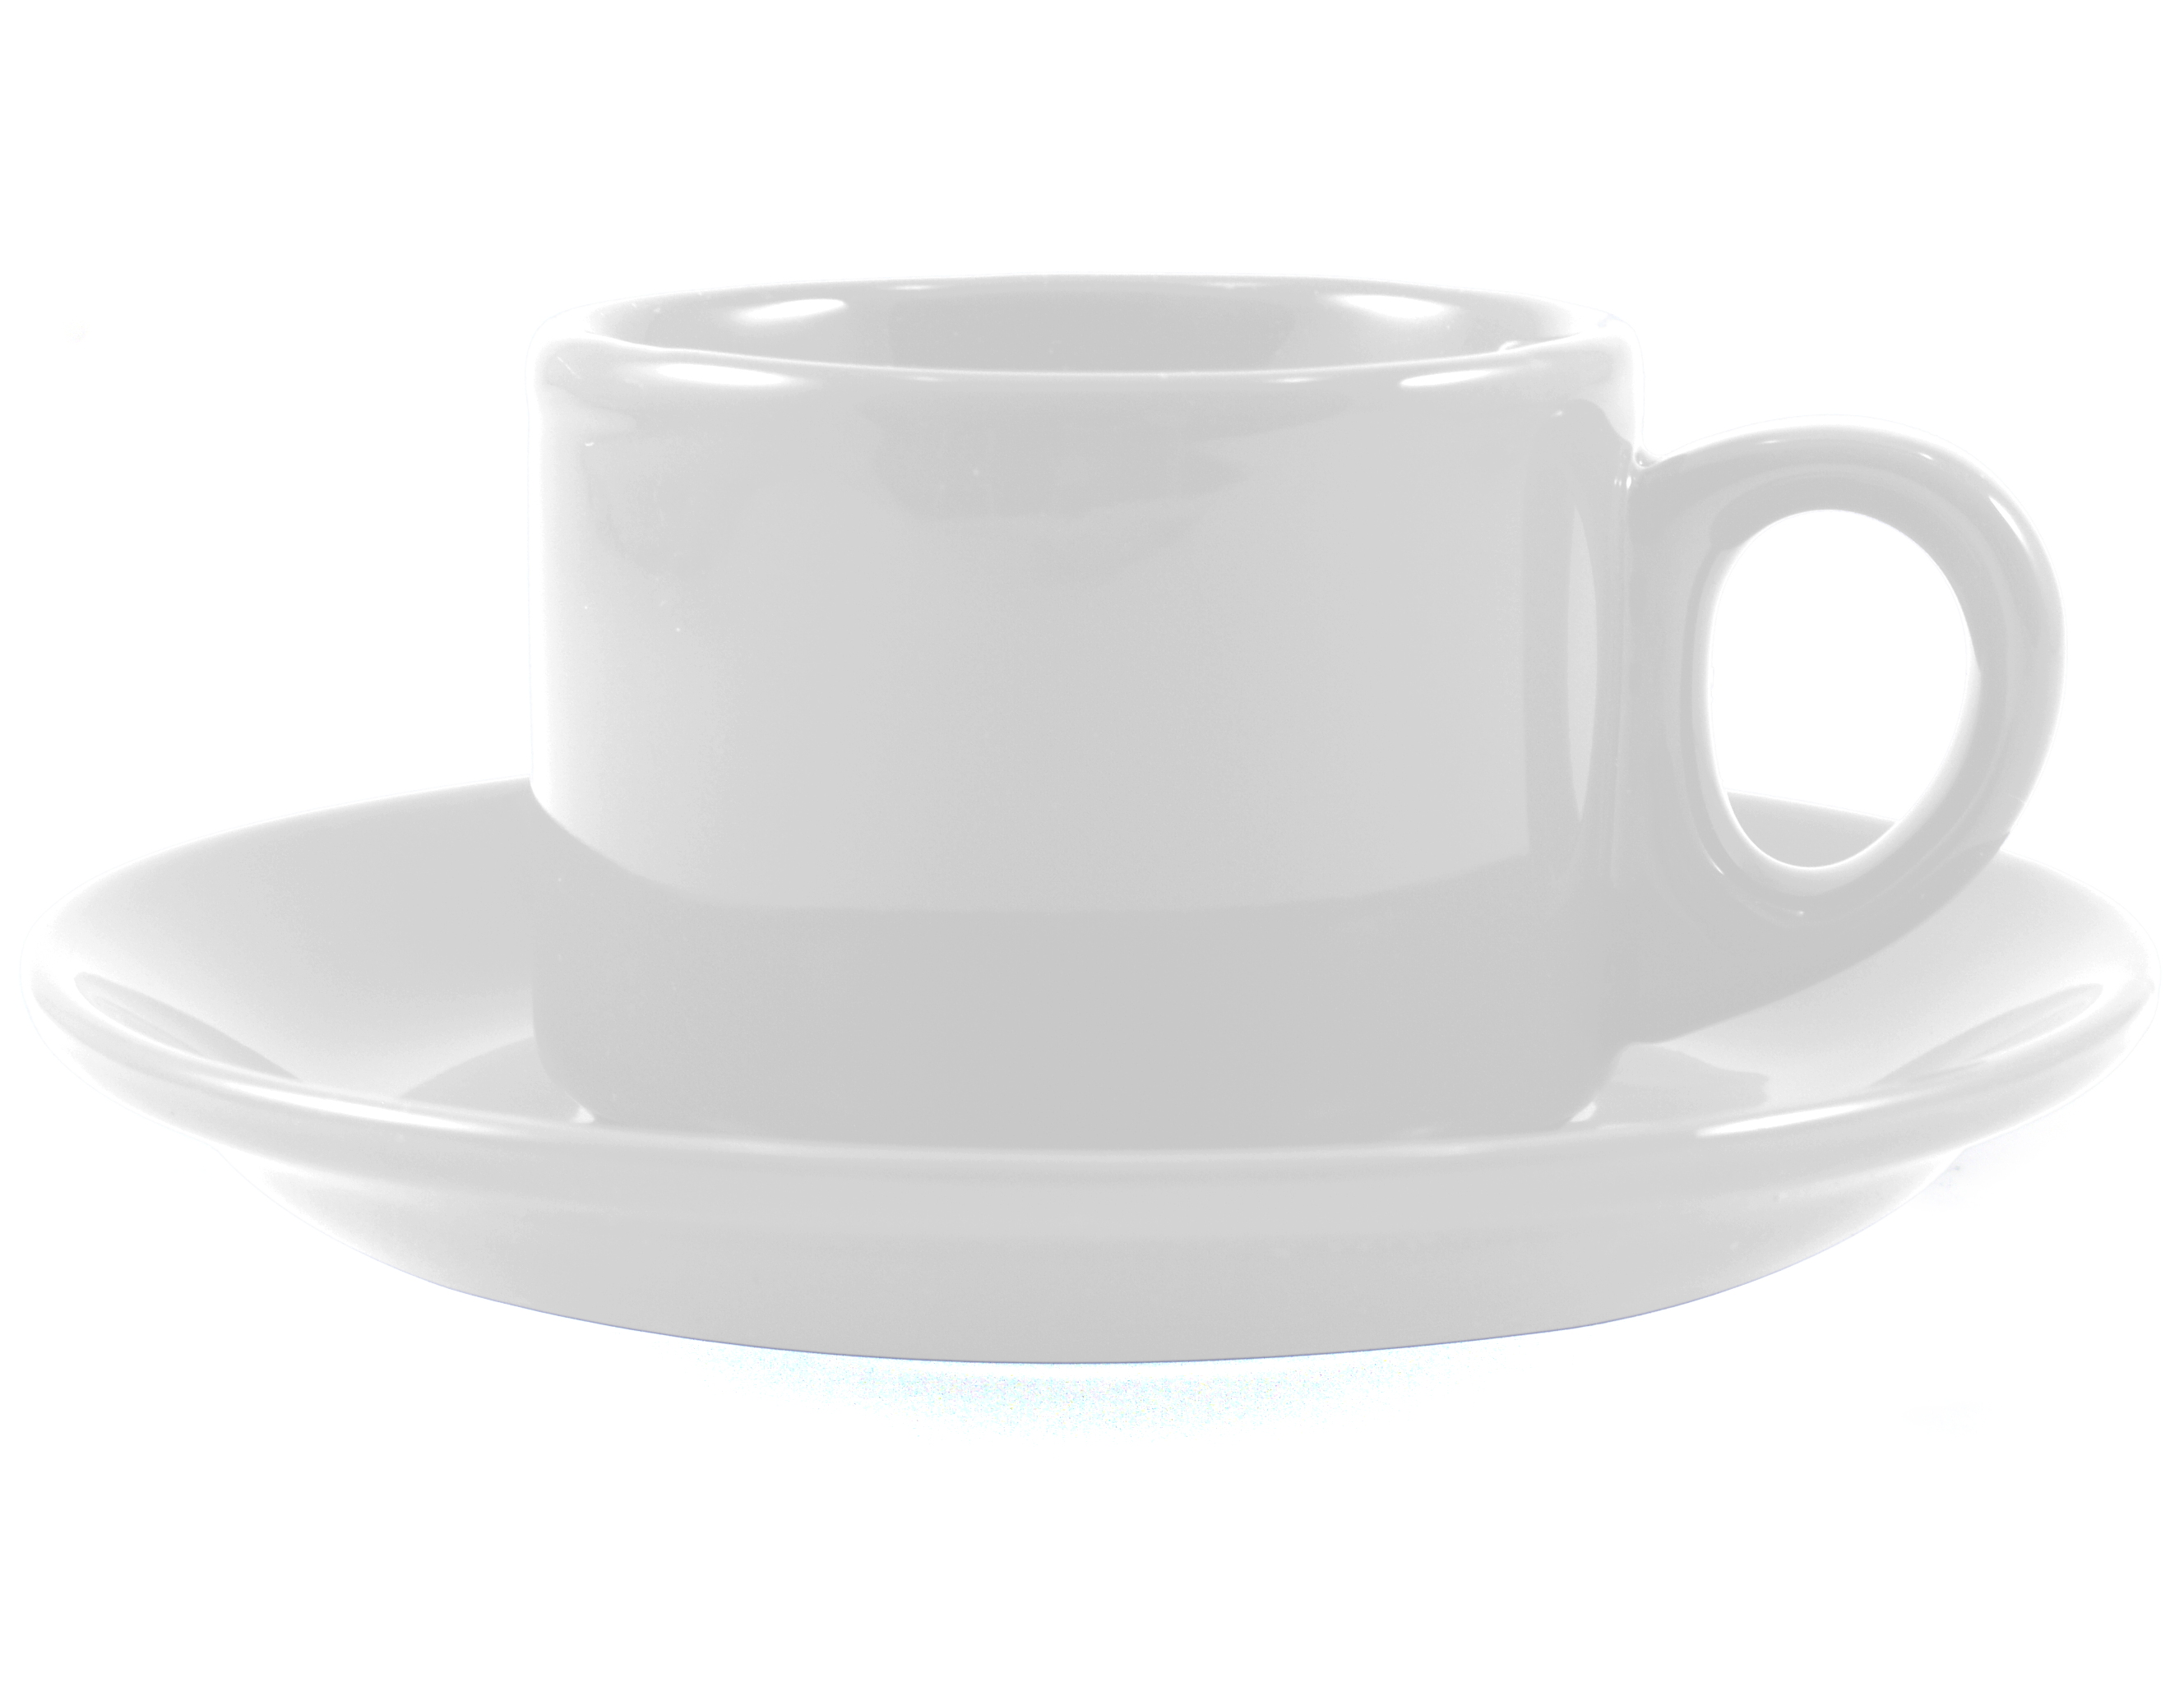 Omniware Espresso Coffee Delight White Stoneware Mug and Saucer Service for 2